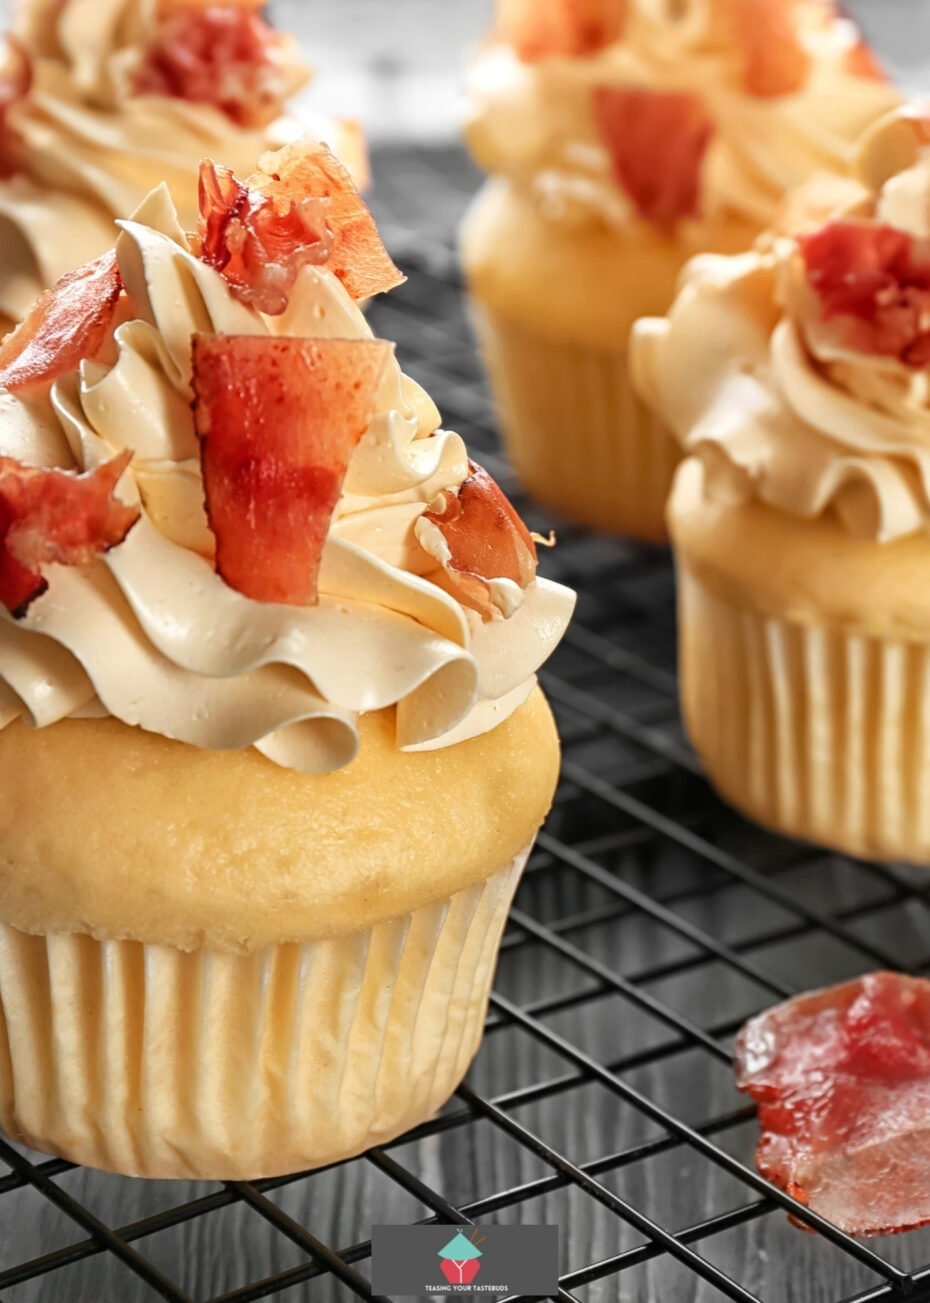 French Toast Cupcakes! These are wonderful soft and moist little cakes with a vanilla and maple flavor, frosted with maple cream and then topped off with some candied bacon. A super easy recipe and always so popular as a breakfast, dessert or for parties!